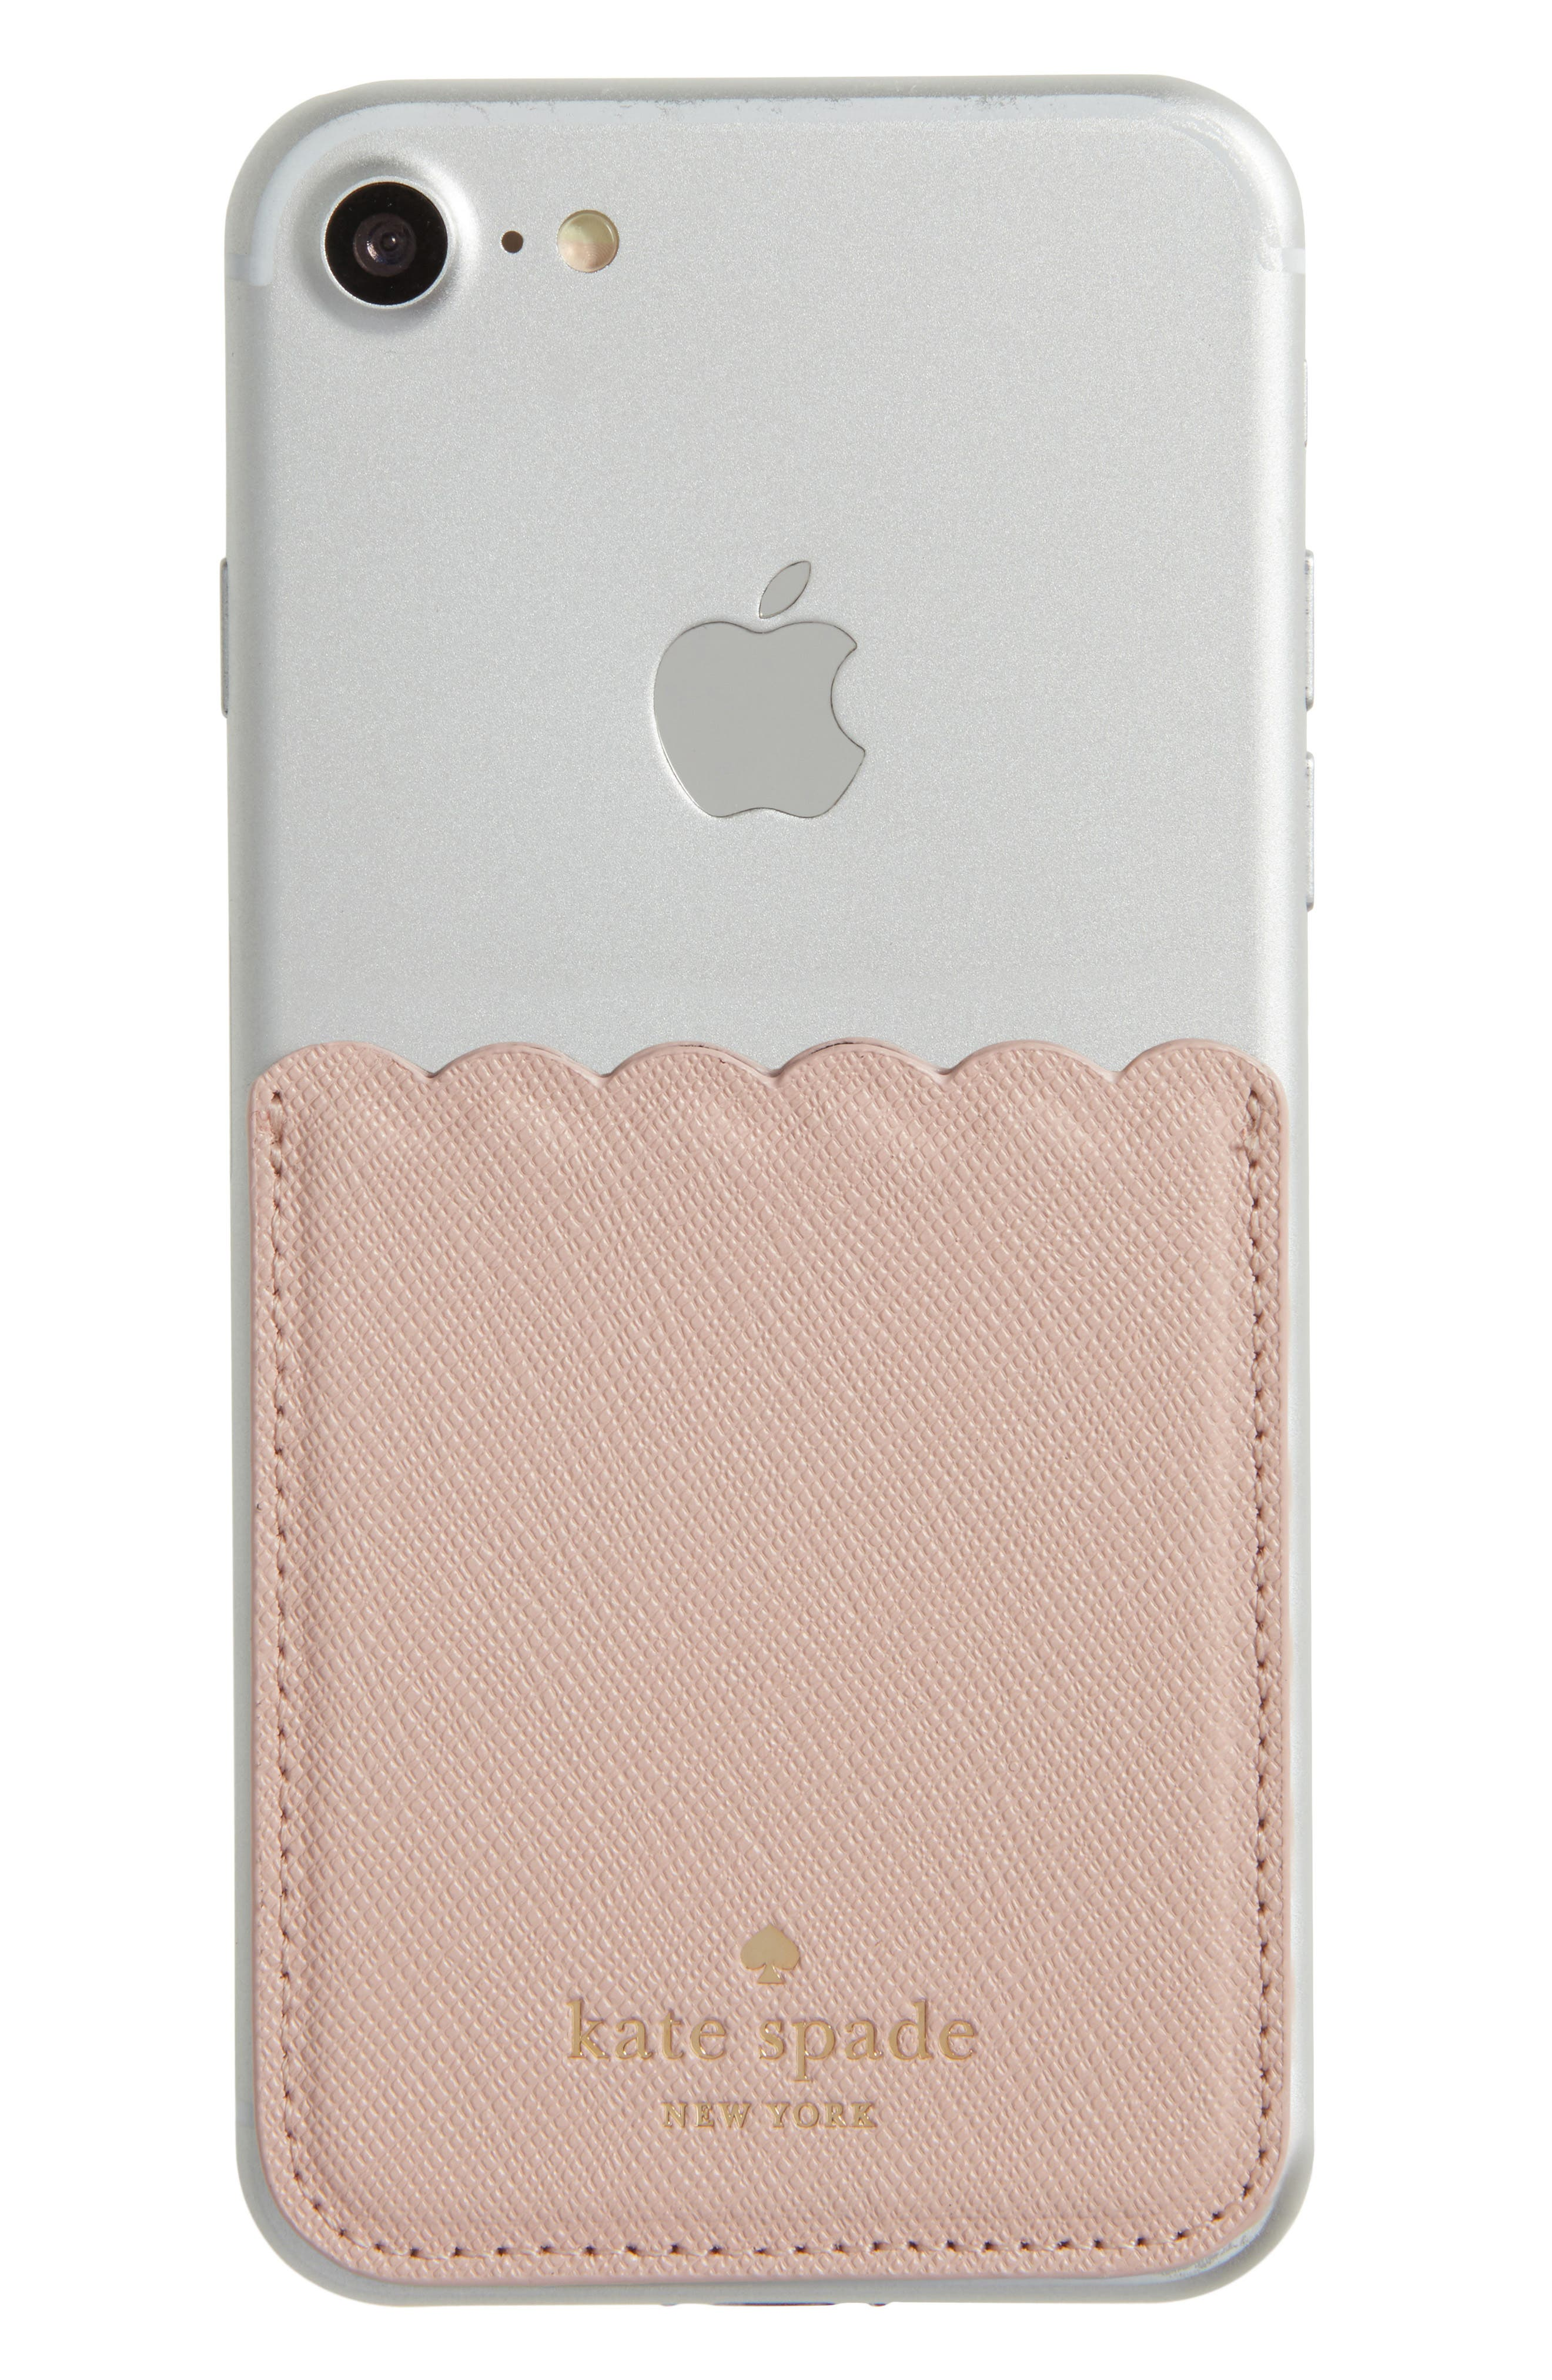 scallop leather stick-on smartphone case pocket,                             Alternate thumbnail 14, color,